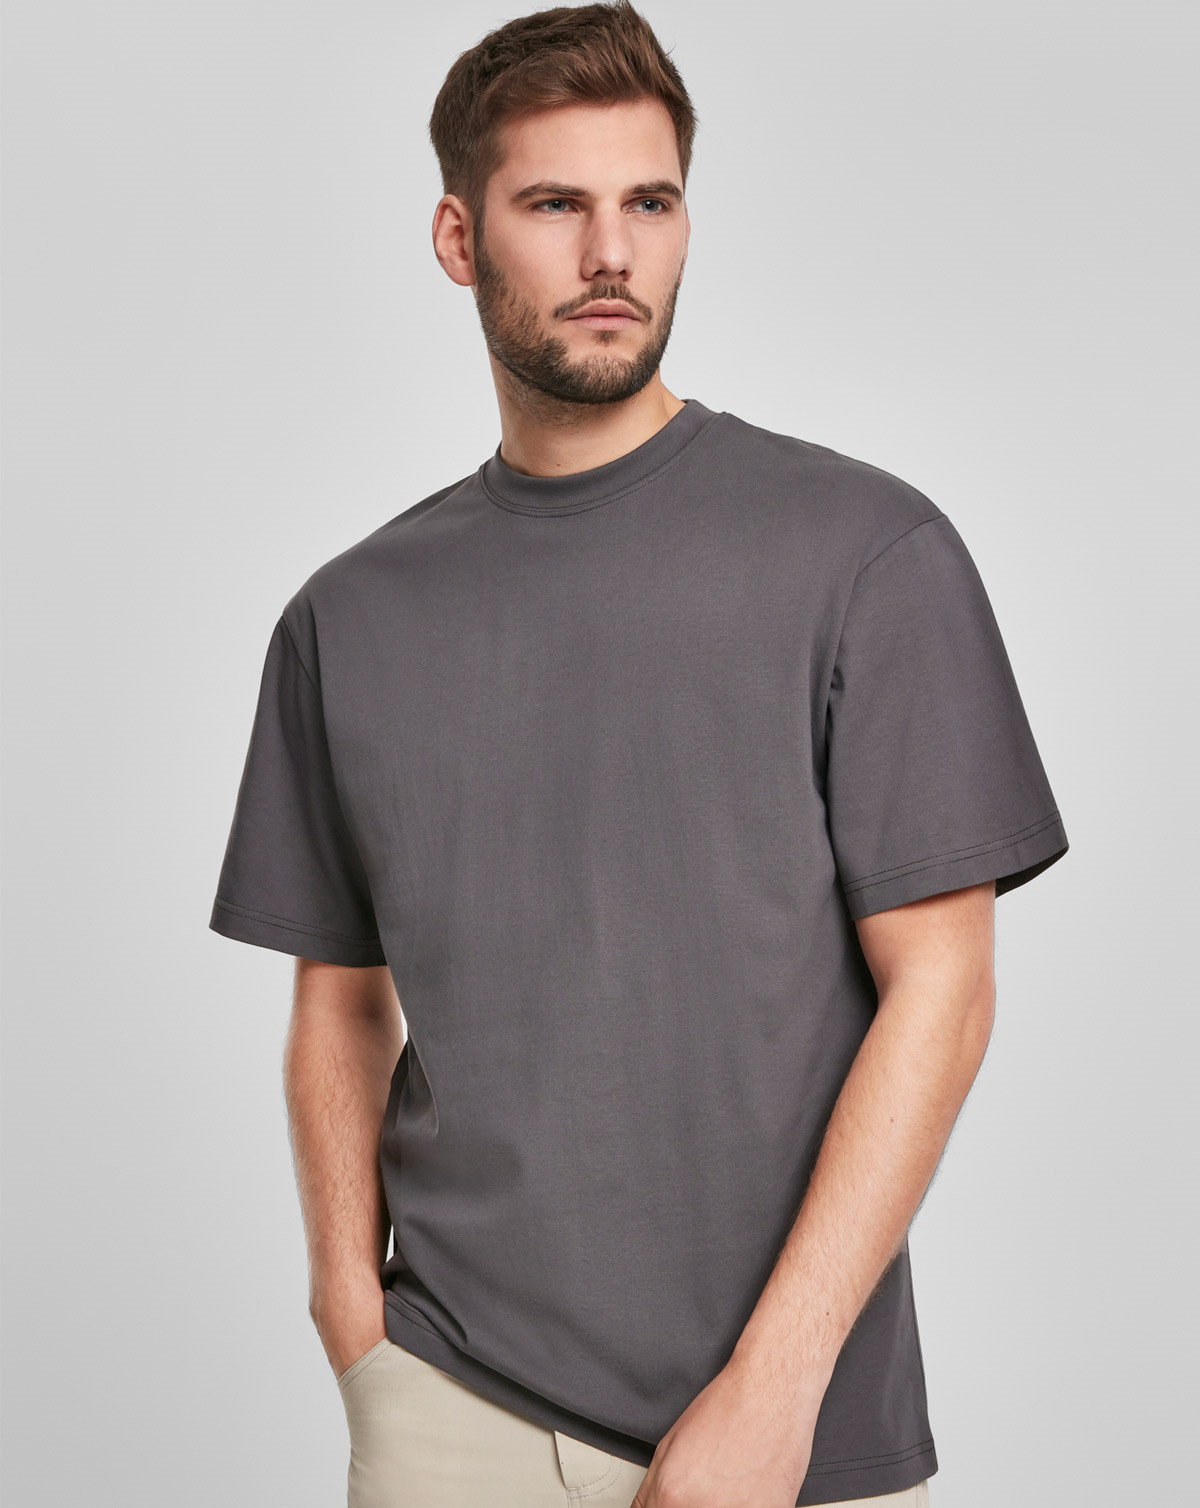 Urban Classics Tall Tee (Dark Shadow, 6XL)